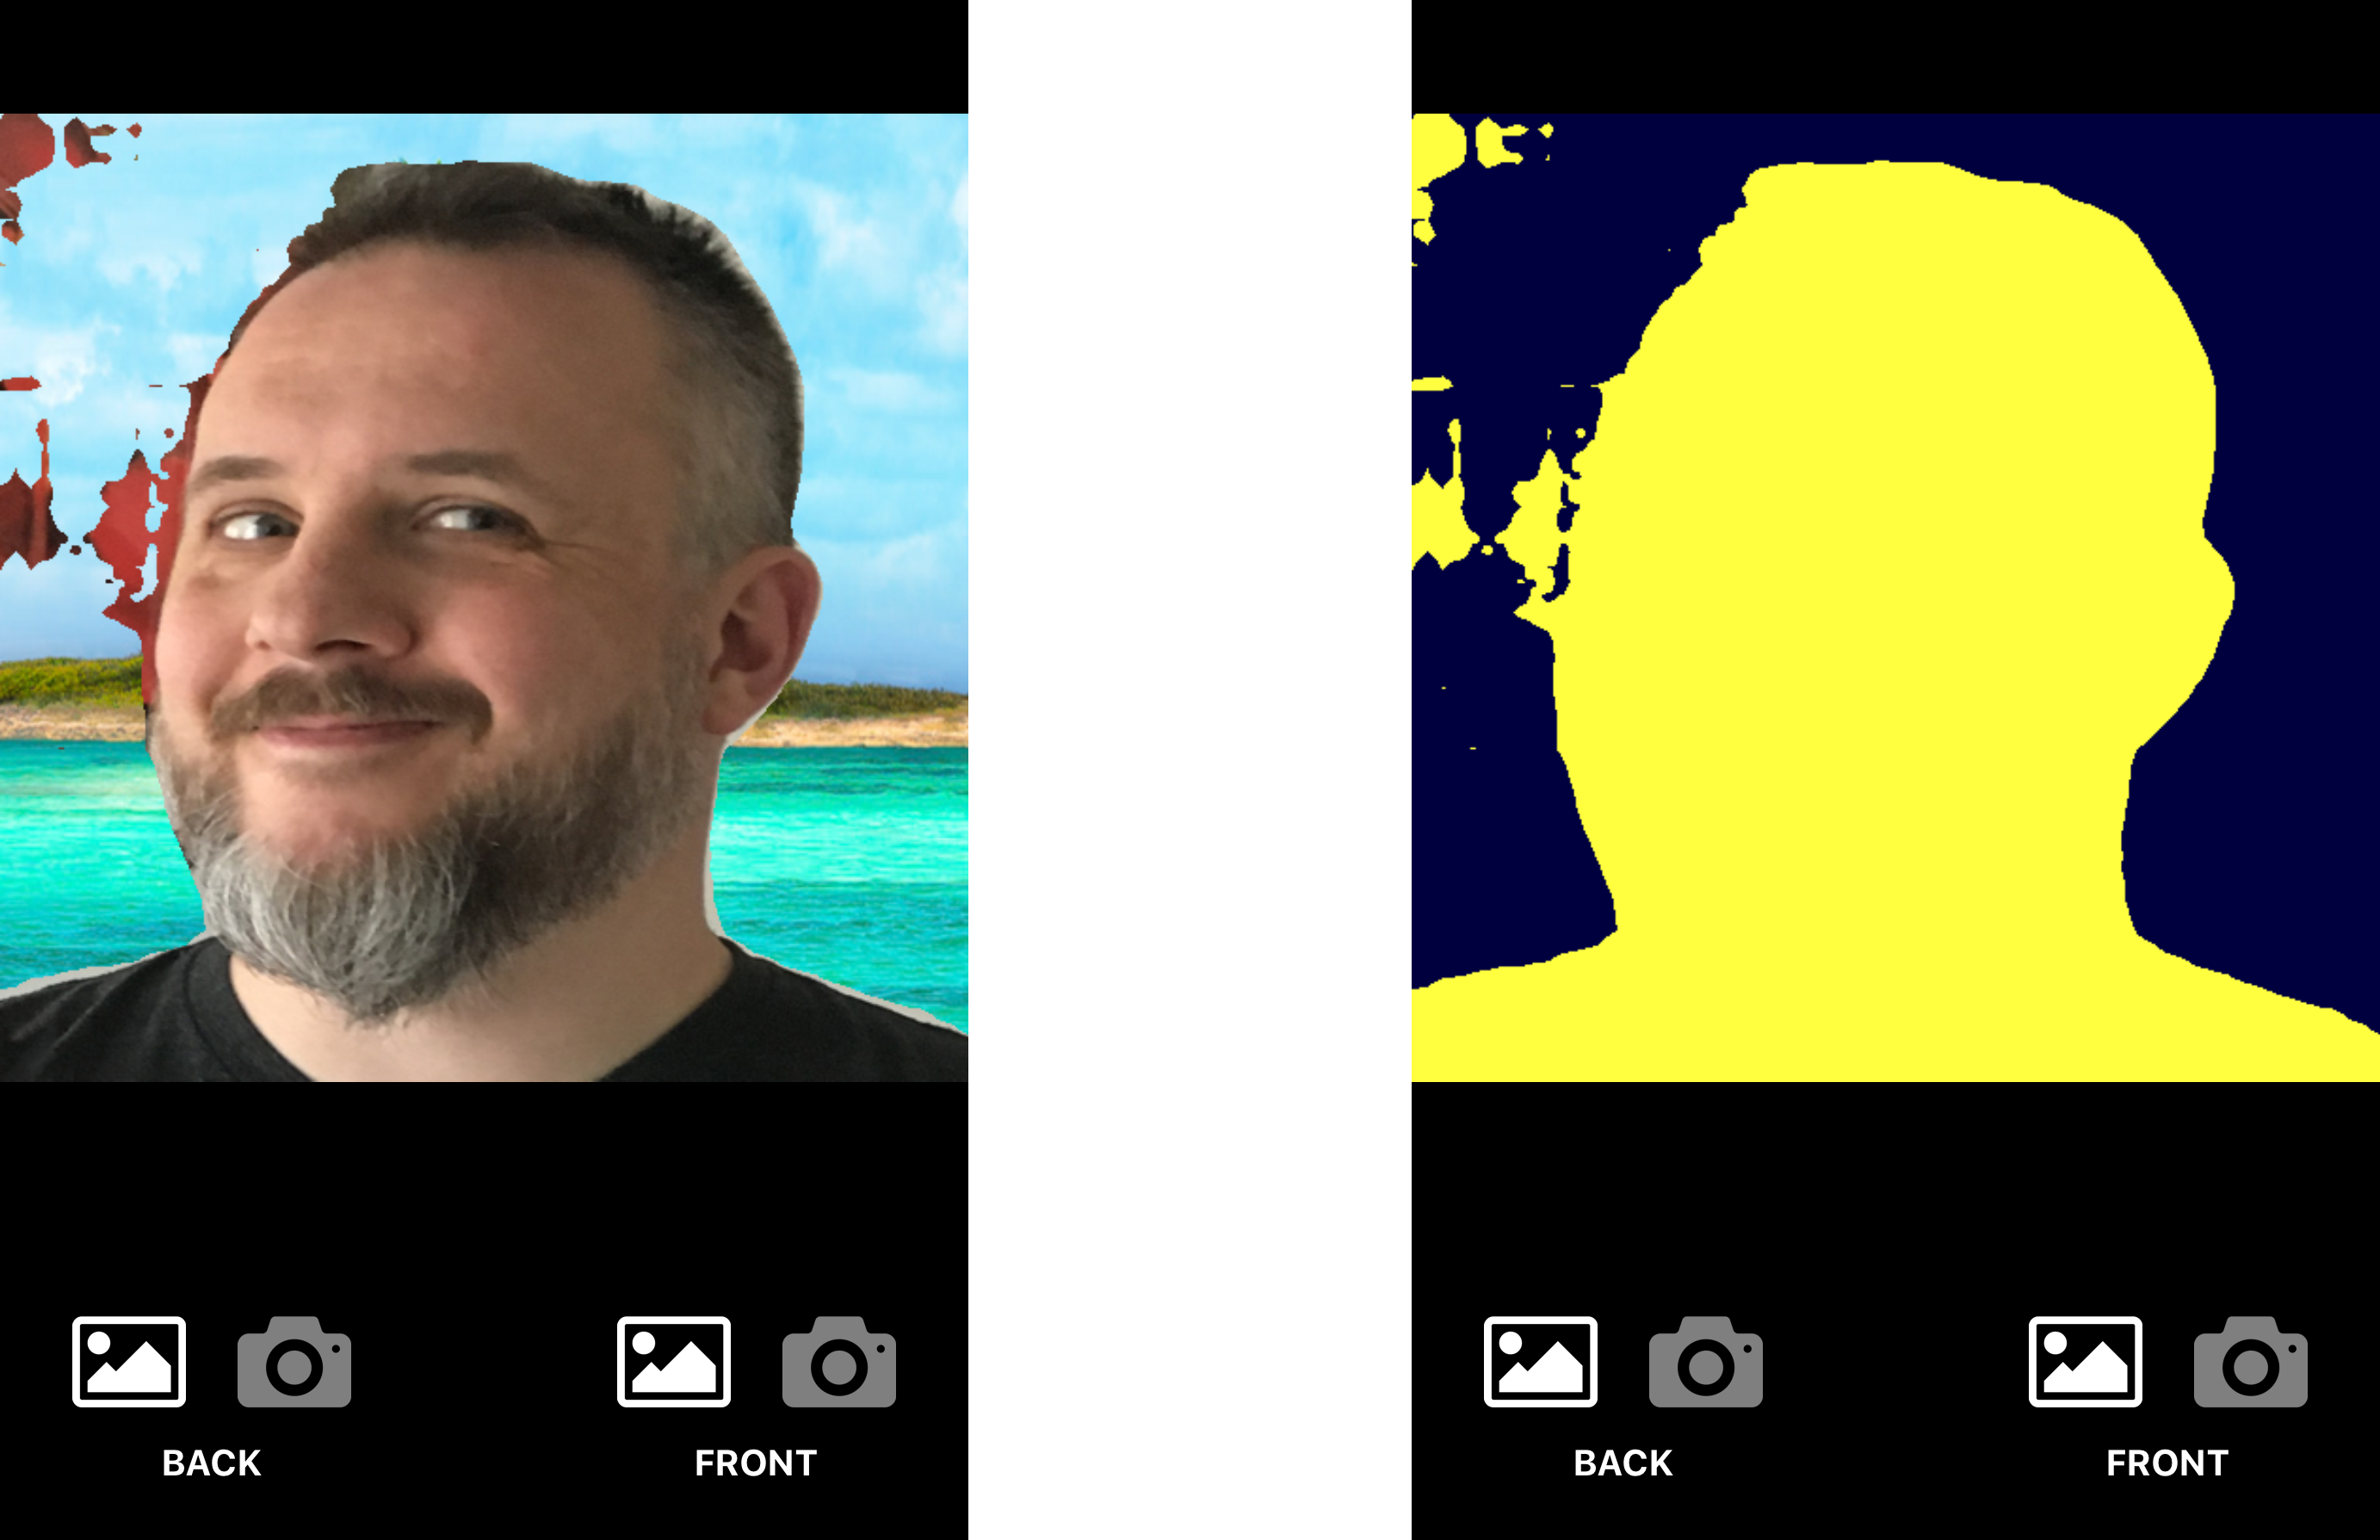 The author on well-deserved fake holiday (left), the corresponding segmentation mask (right)